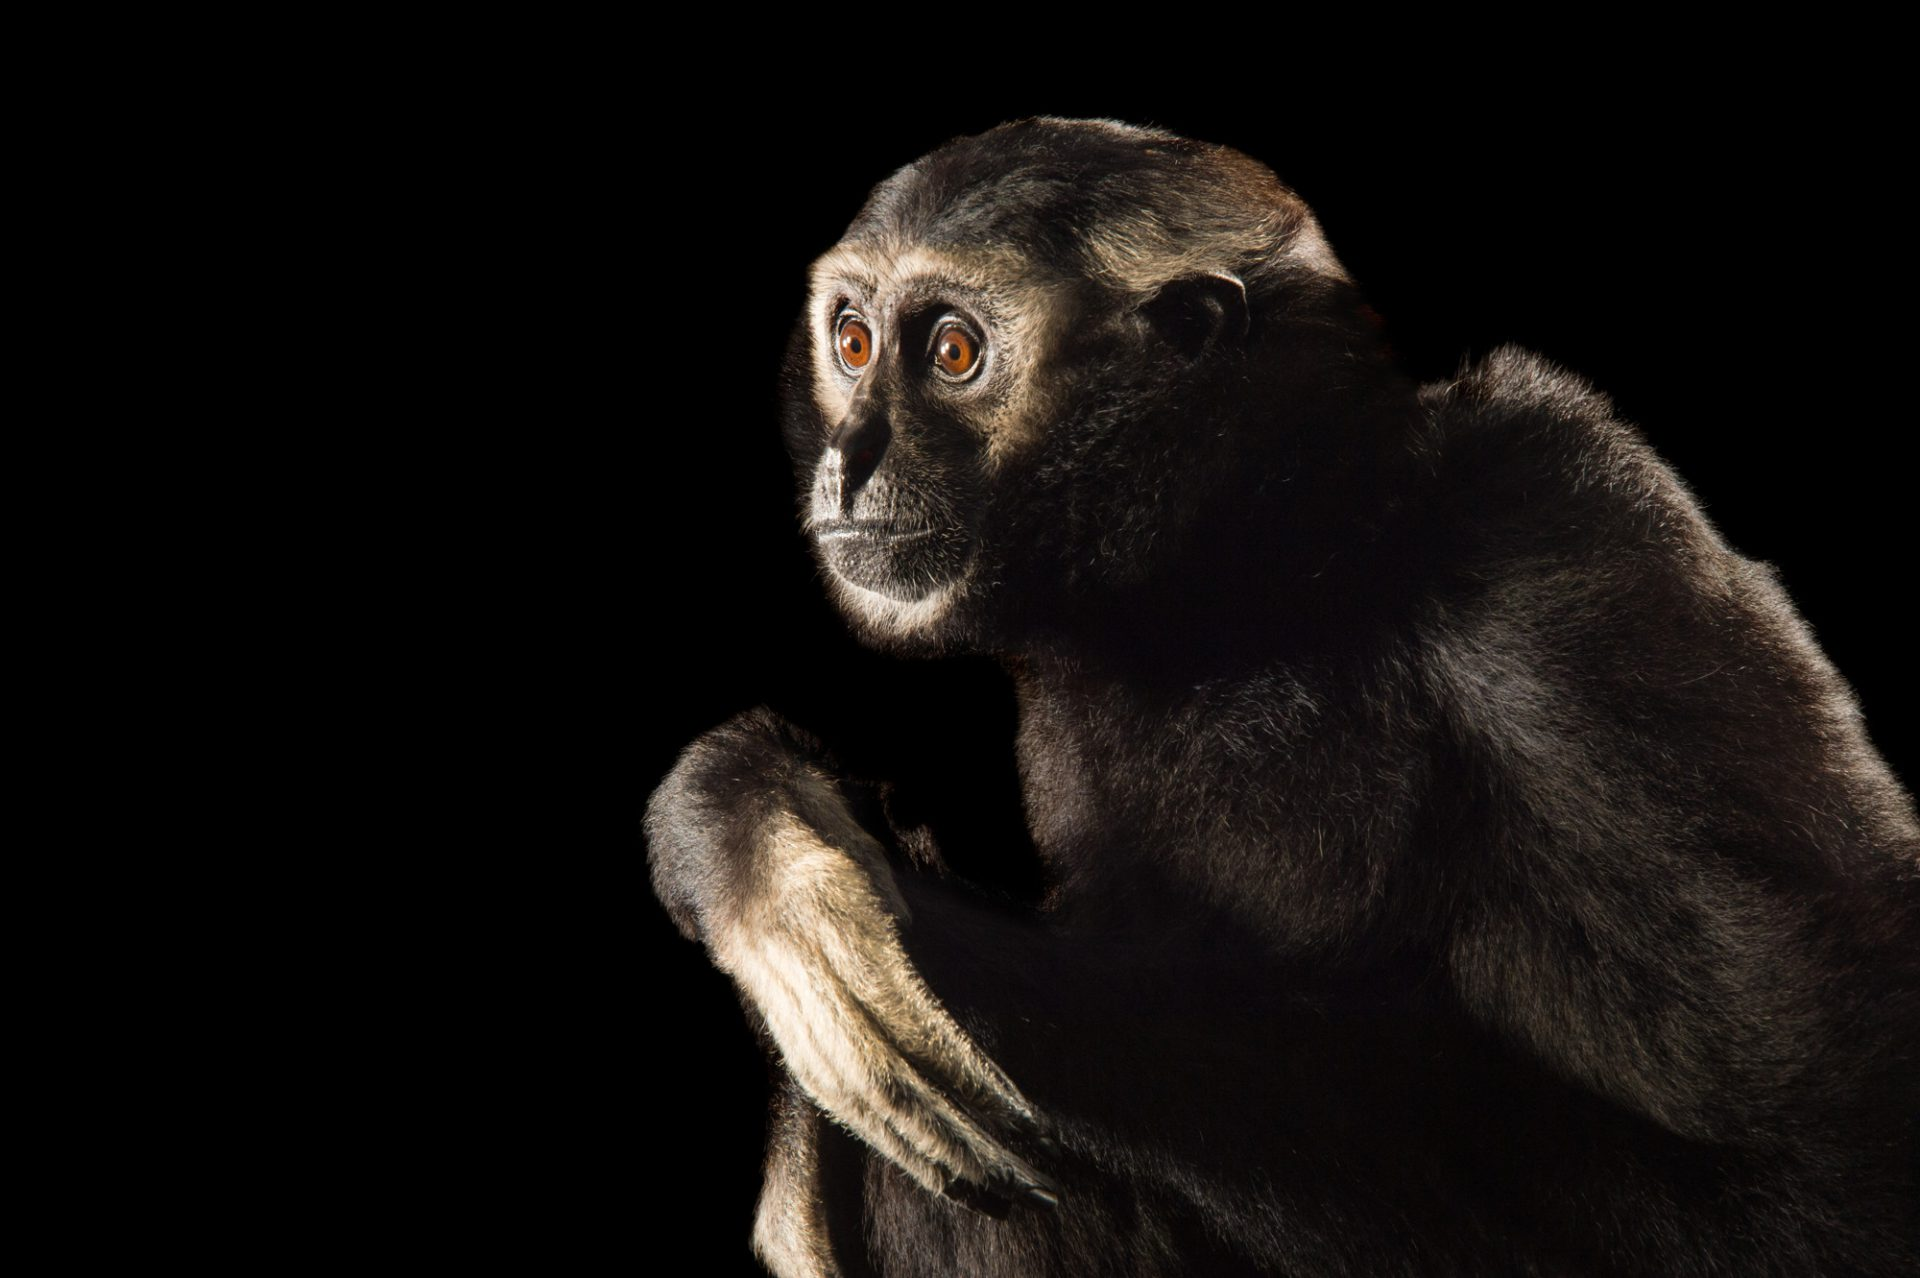 Photo of an endangered male pileated gibbon (Hylobates pileatus) at the Gibbon Conservation Center